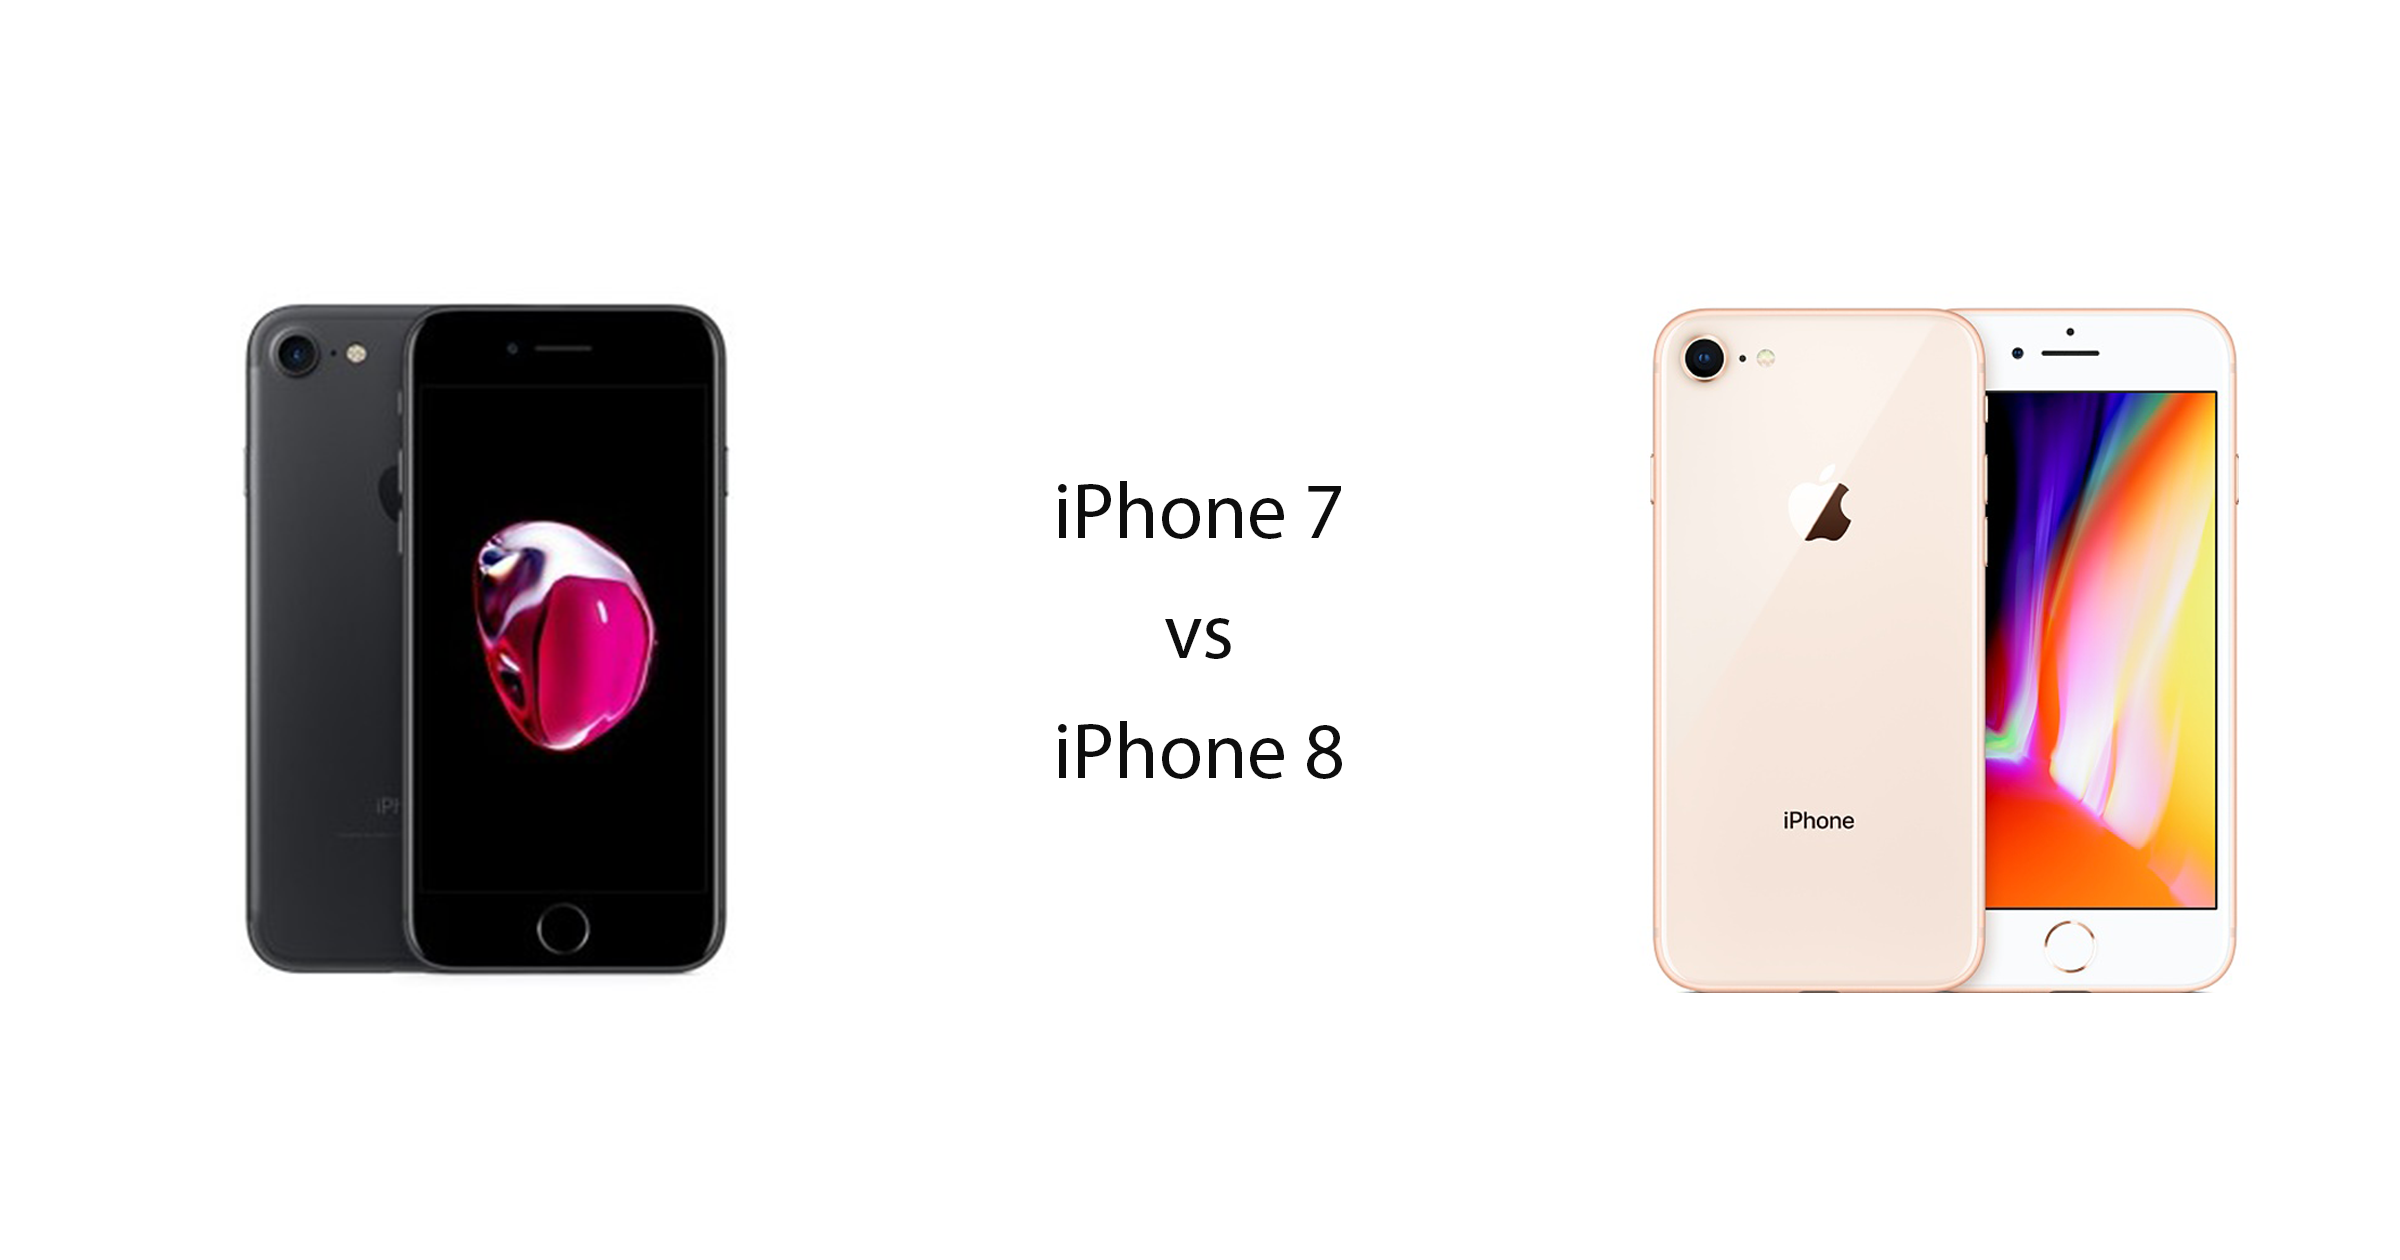 iphone 7 iphone 7 Plus iphone 7 vs iphone 8 iphone 8 plus new iphone uus iphone new generation iphone apple mobipunkt ipad wacth  macbook  iphone 8 hind iphone 8 müük